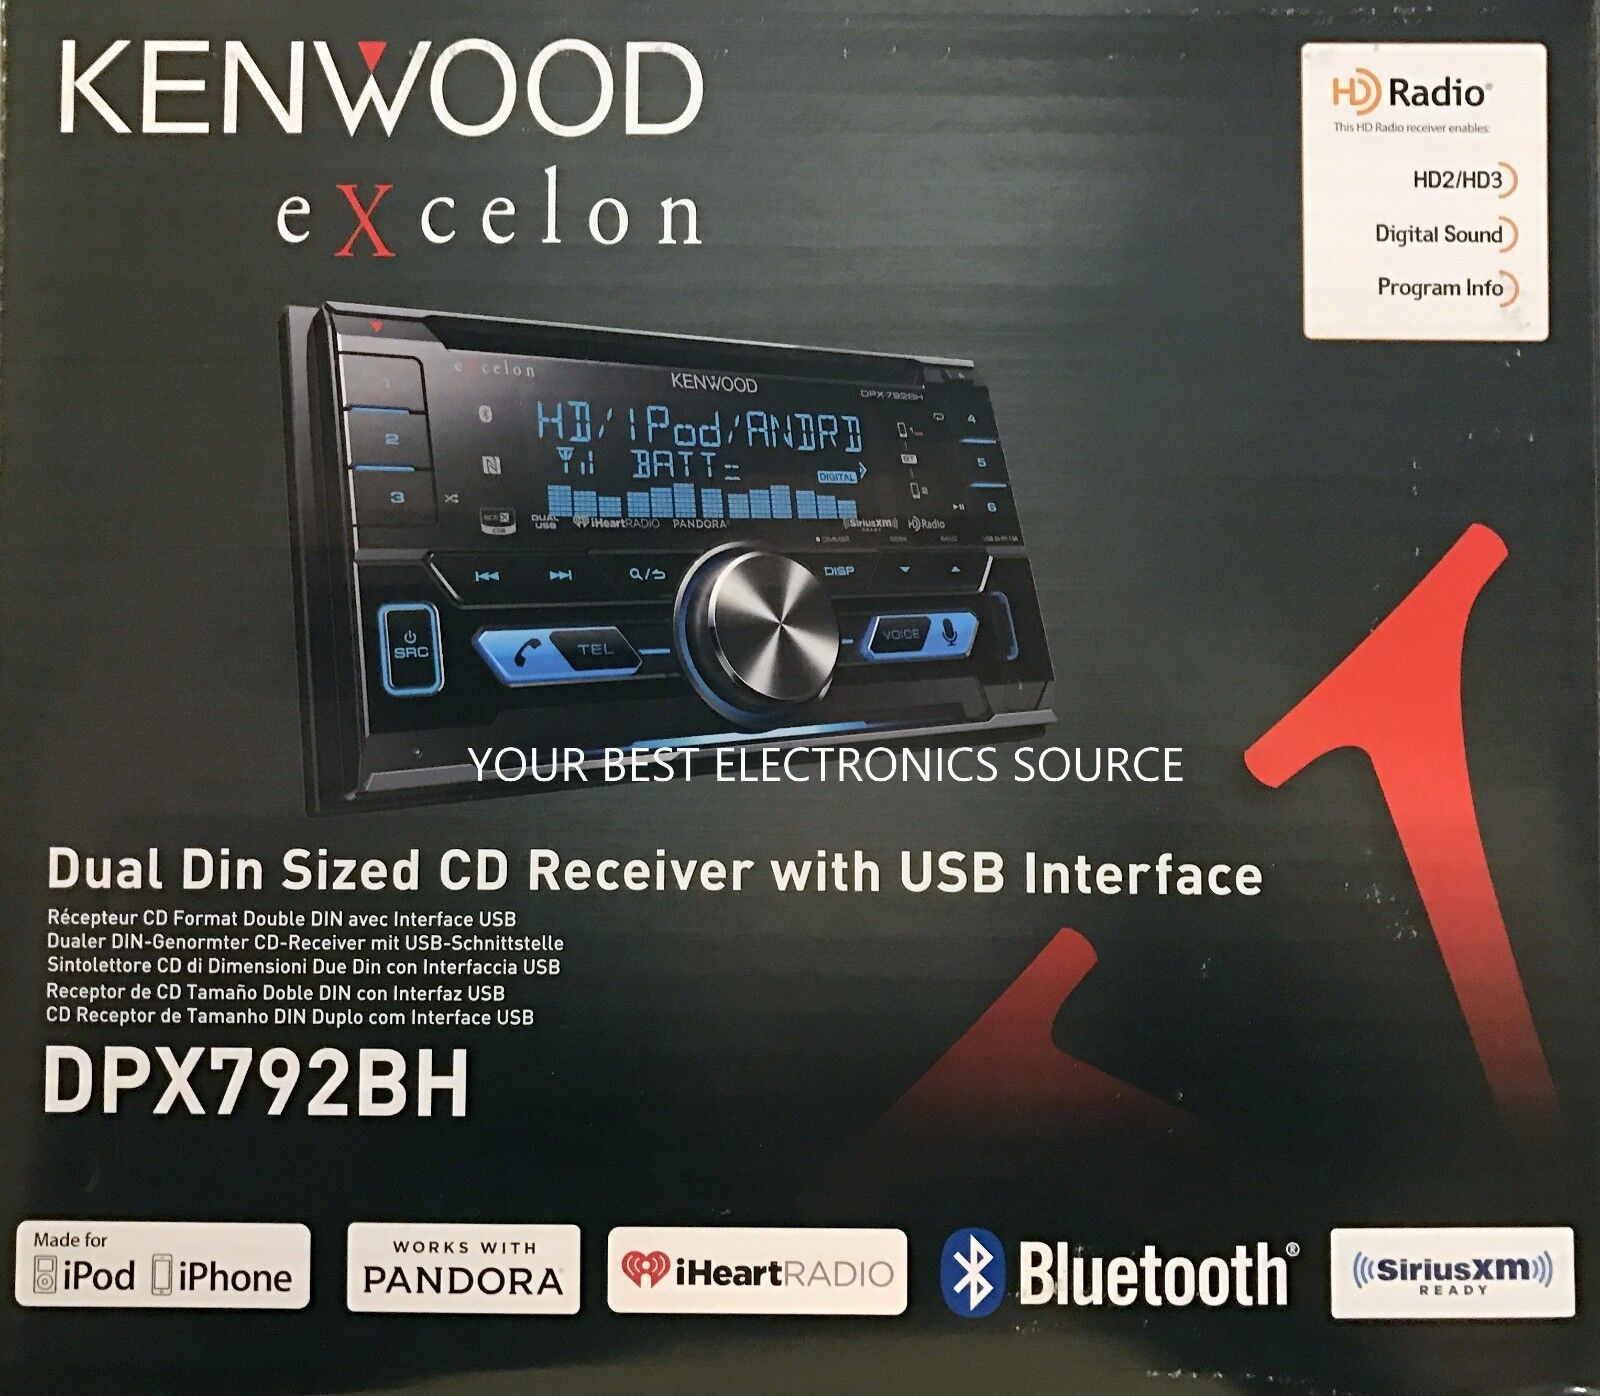 $209.00 - NEW KENWOOD DPX792BH Double-DIN Car Stereo w/ Built-in HD Radio & Bluetooth